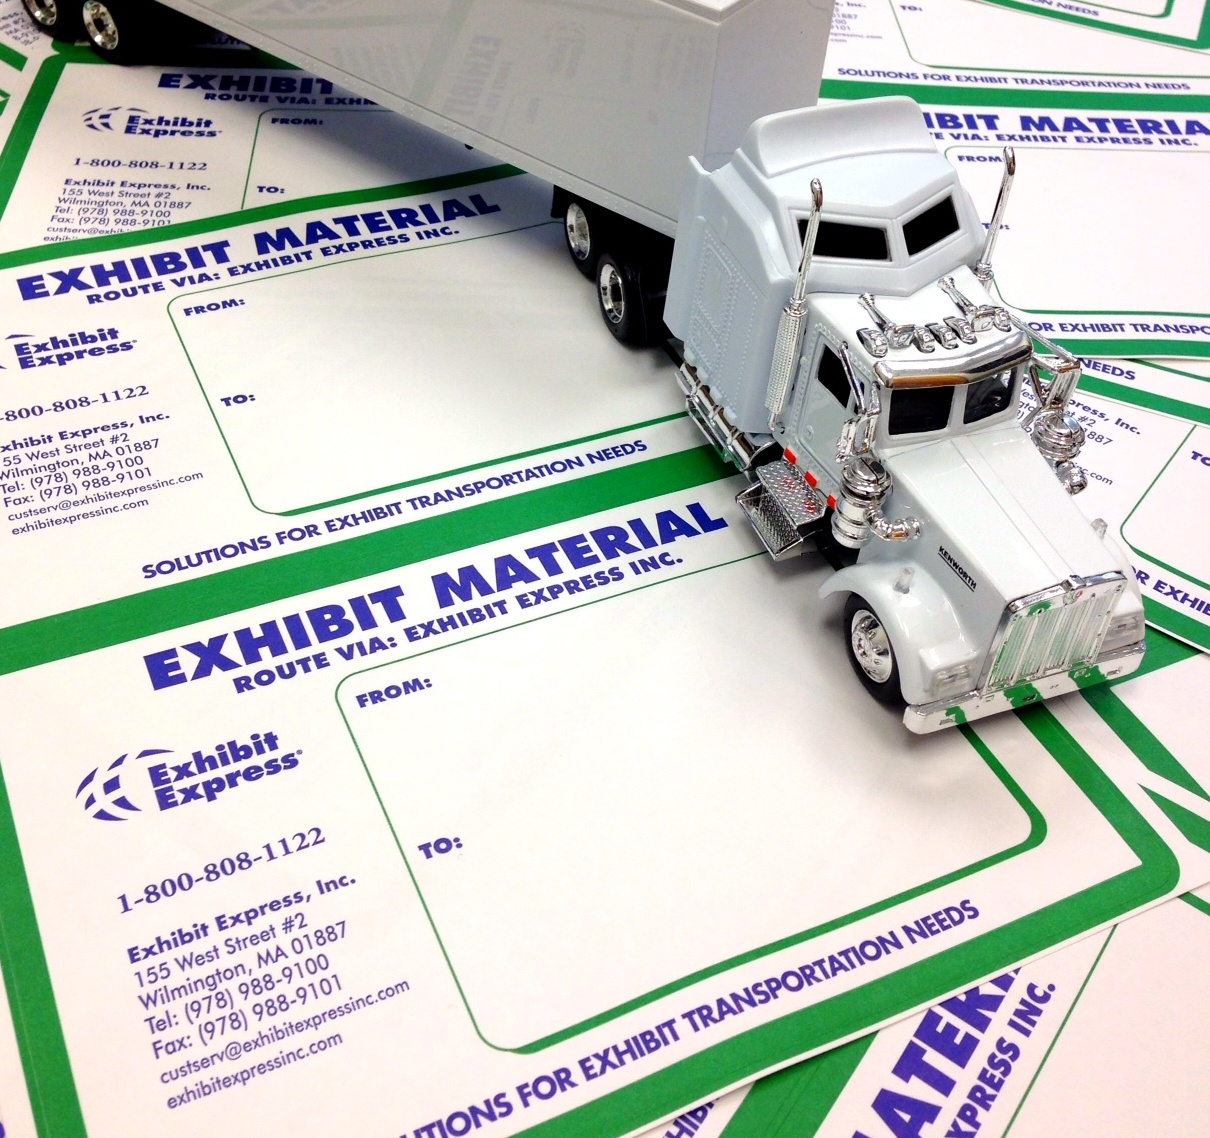 Exhibit Express shipping labels